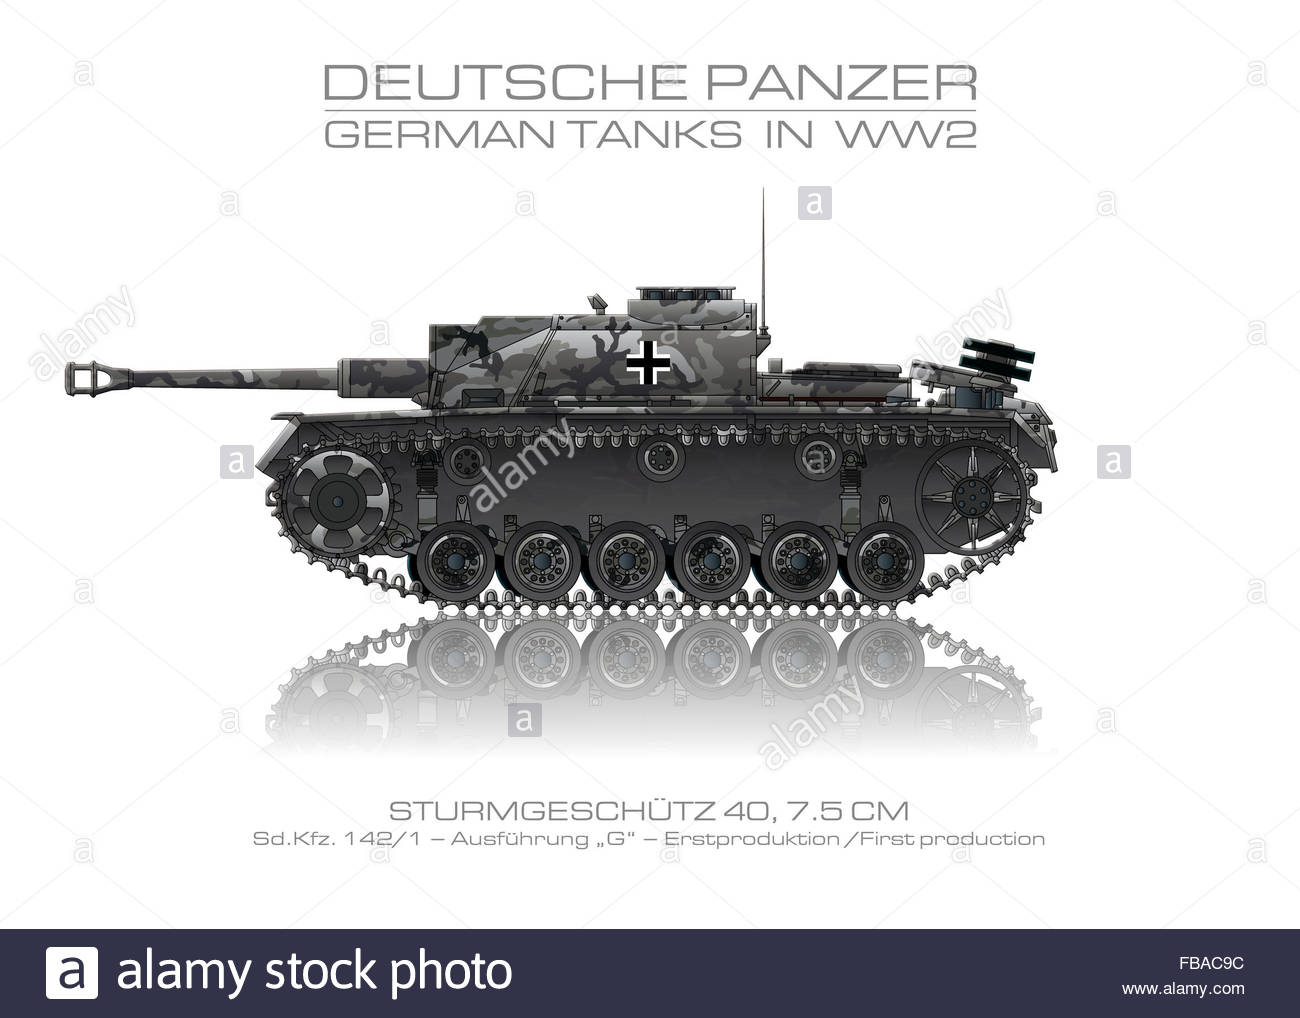 Sd. Kfz. 142/1 - German tank - Panzer. The picture shows a tank of the German Wehrmacht in World War II. - Stock Image